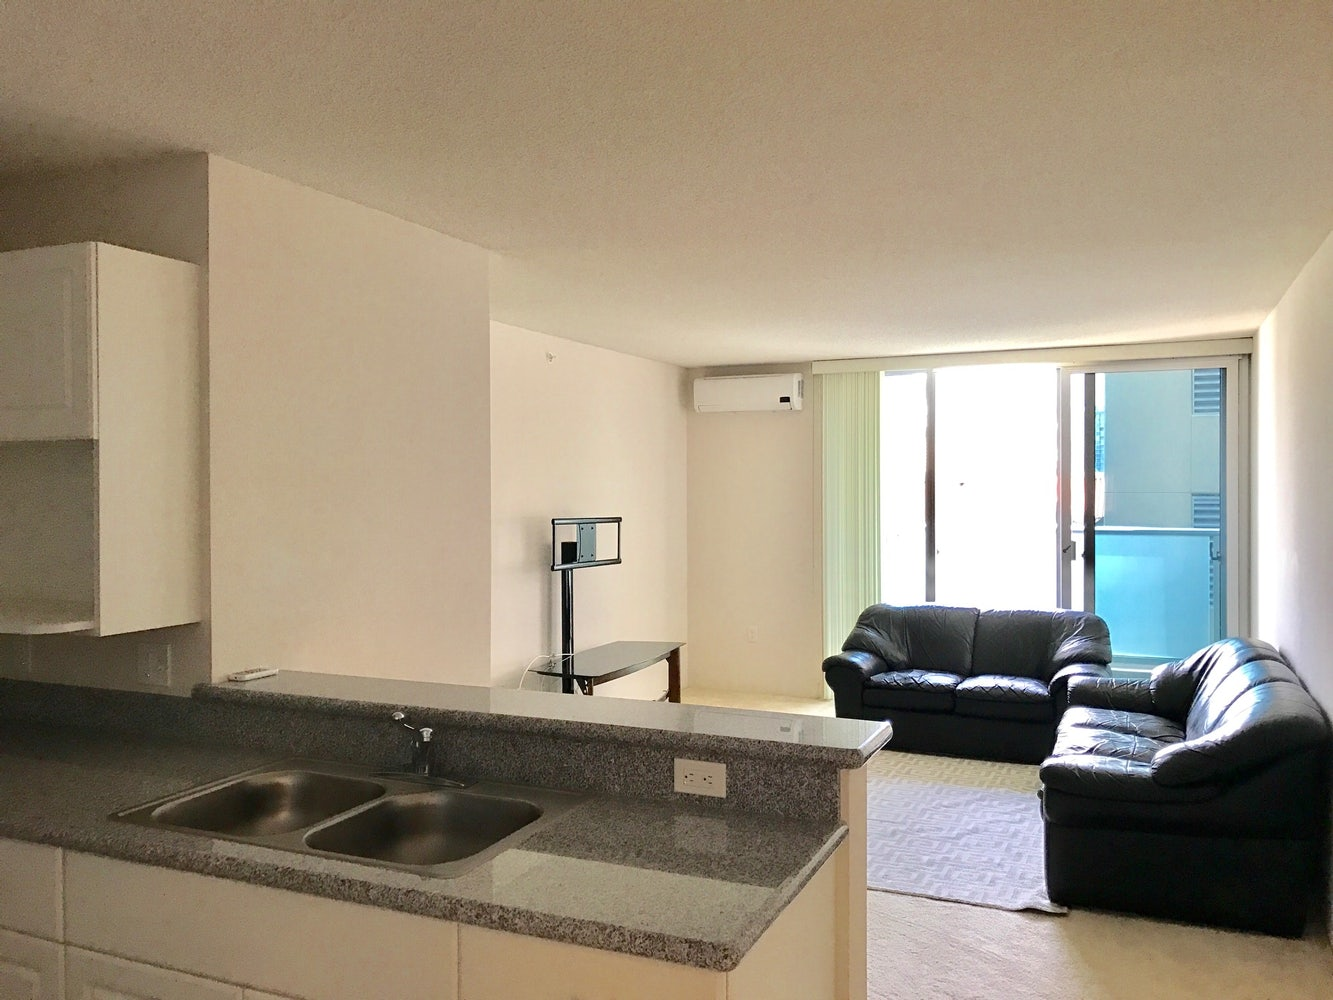 2 Bedroom Furnished Apartment Honolulu